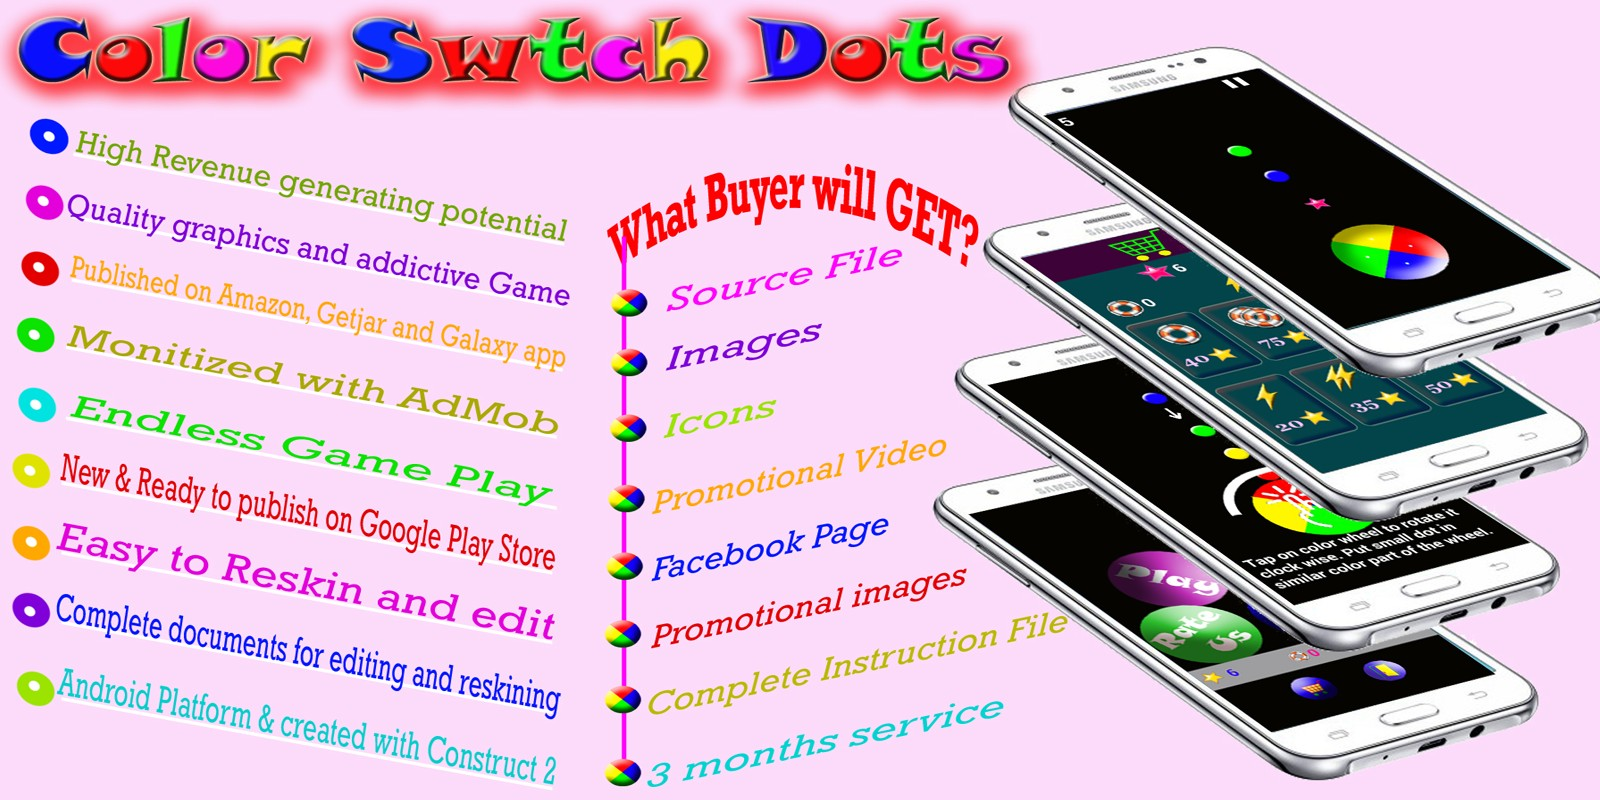 Color Switch Dots - Android Game Source Code